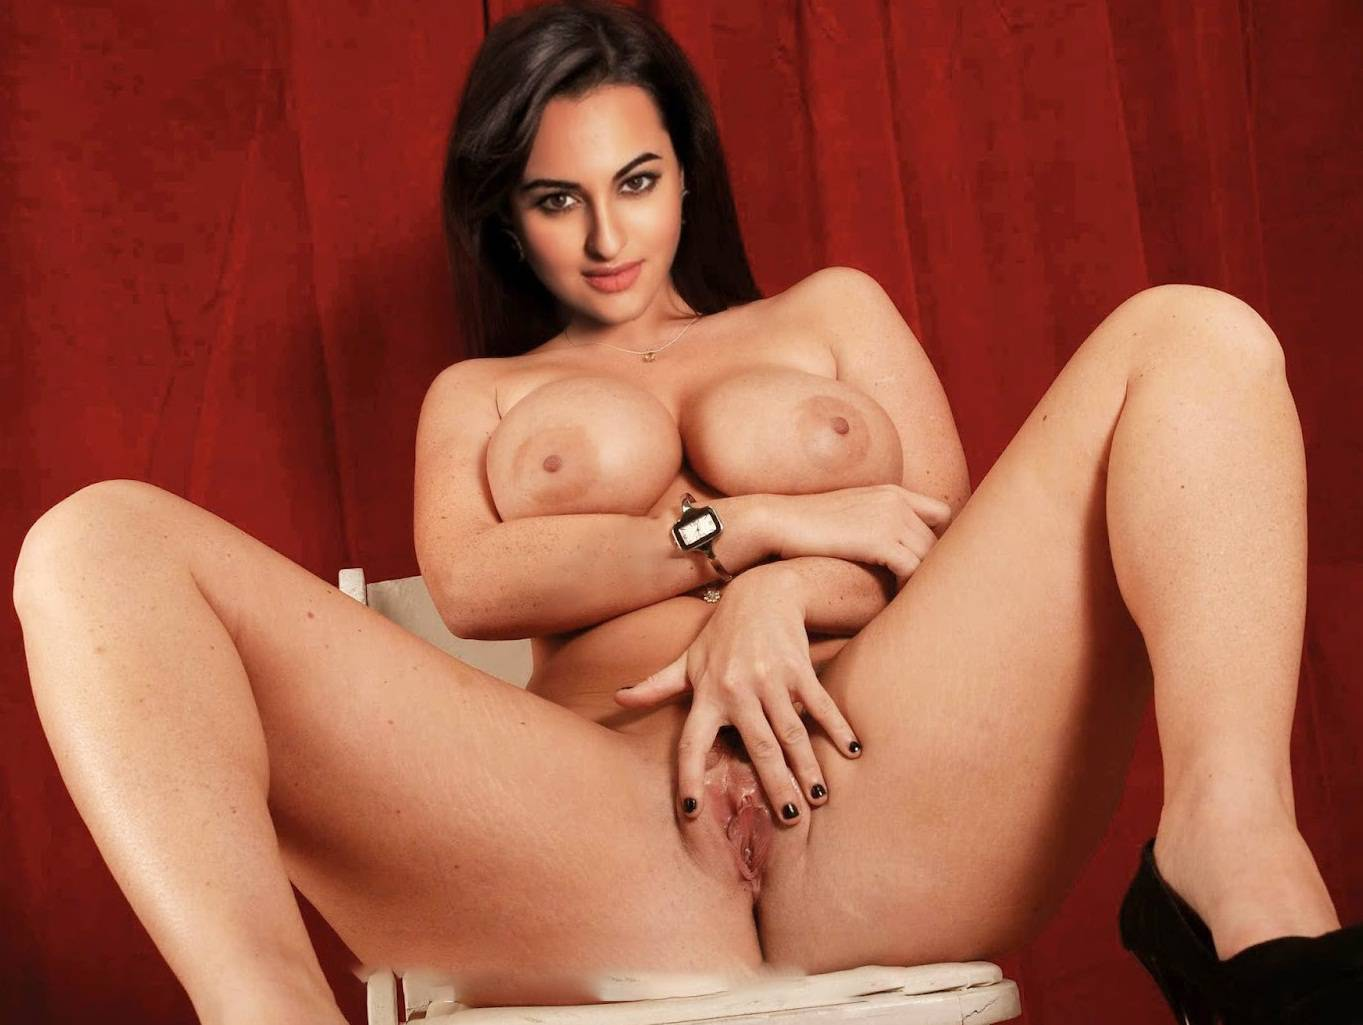 Bollywood all xxx hd photo, pornhubhardcore sluts gallery